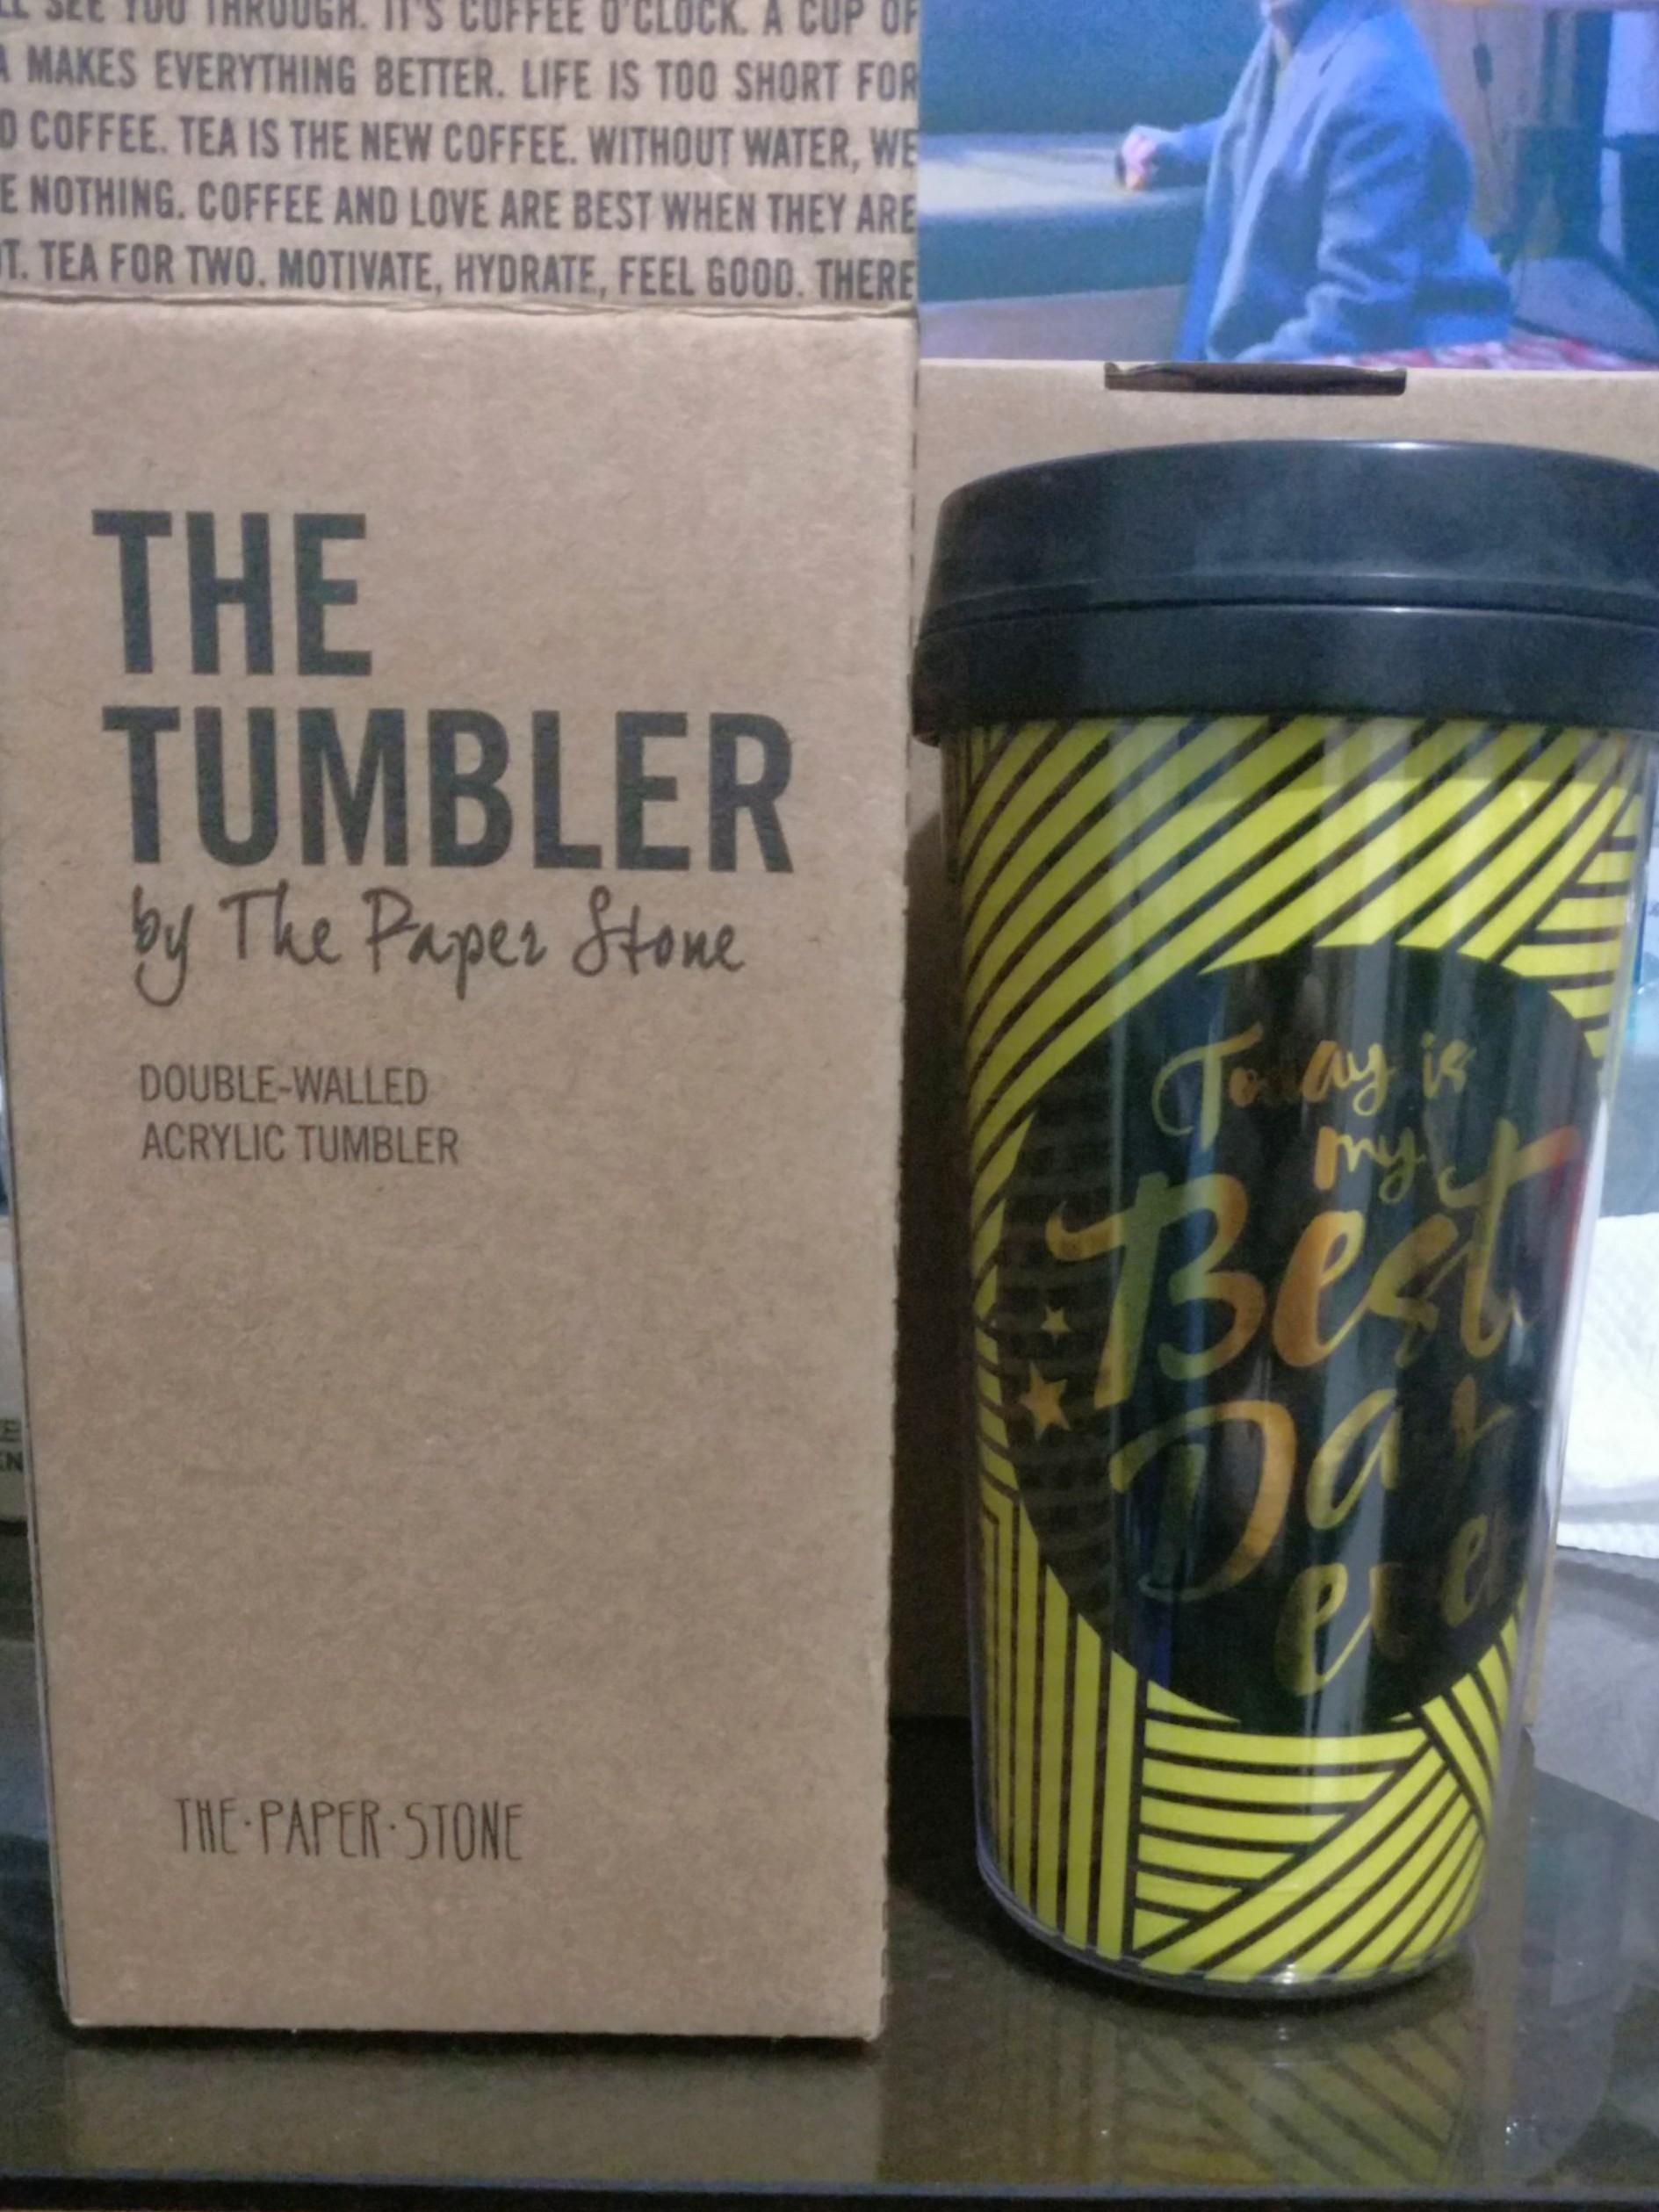 The Tumbler - The Paper Stone